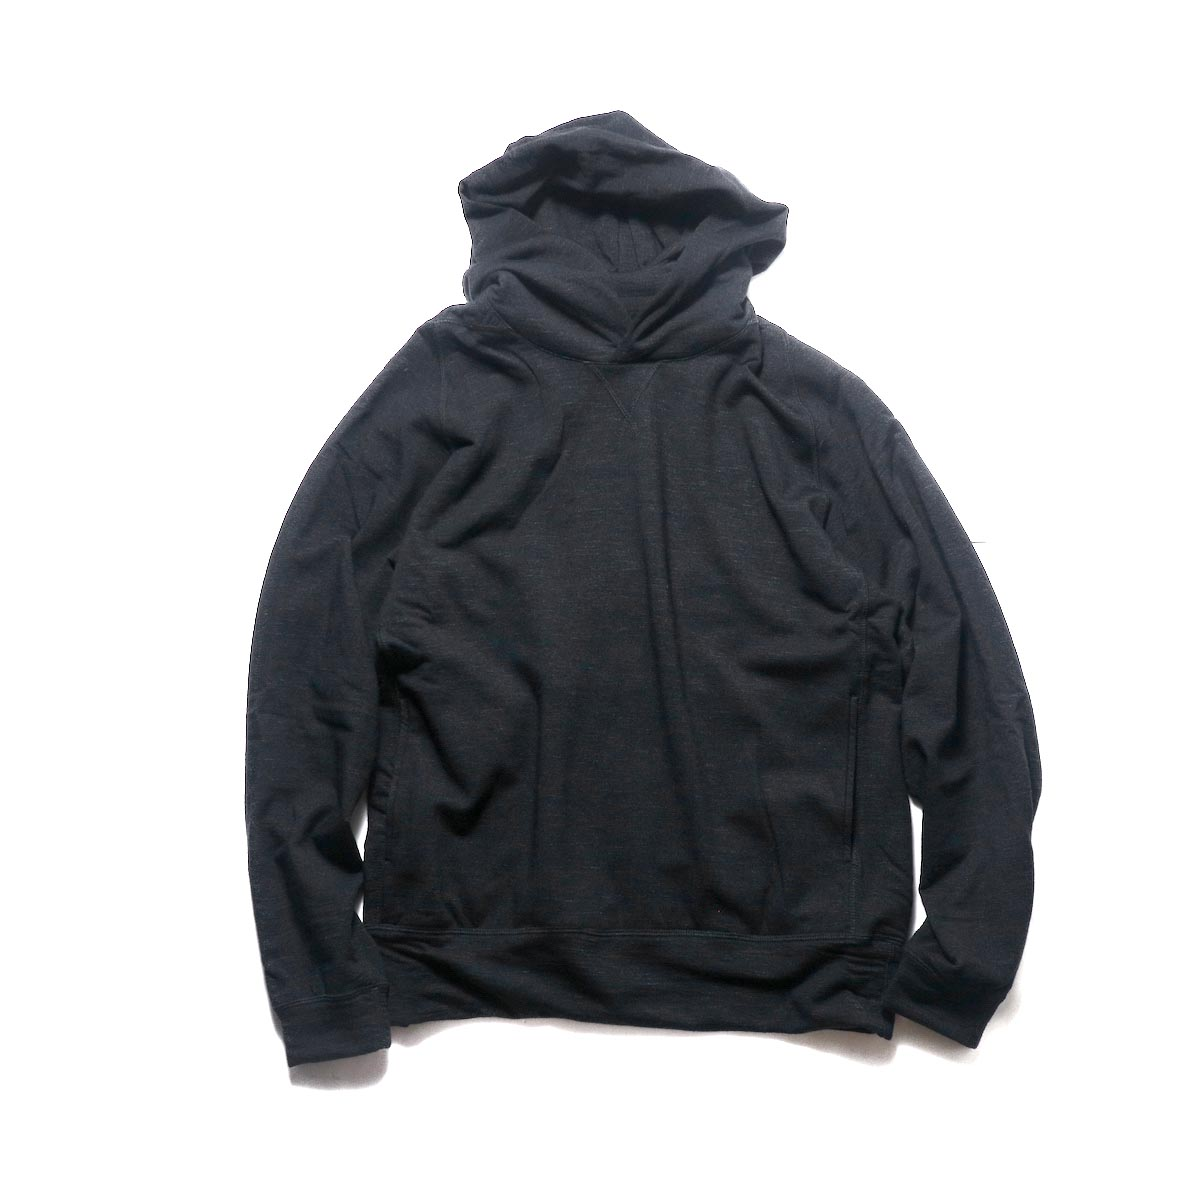 nonnative / DWELLER HOODY W/N/P HEAVY JERSEY Mt.Breath Wool® (Black)